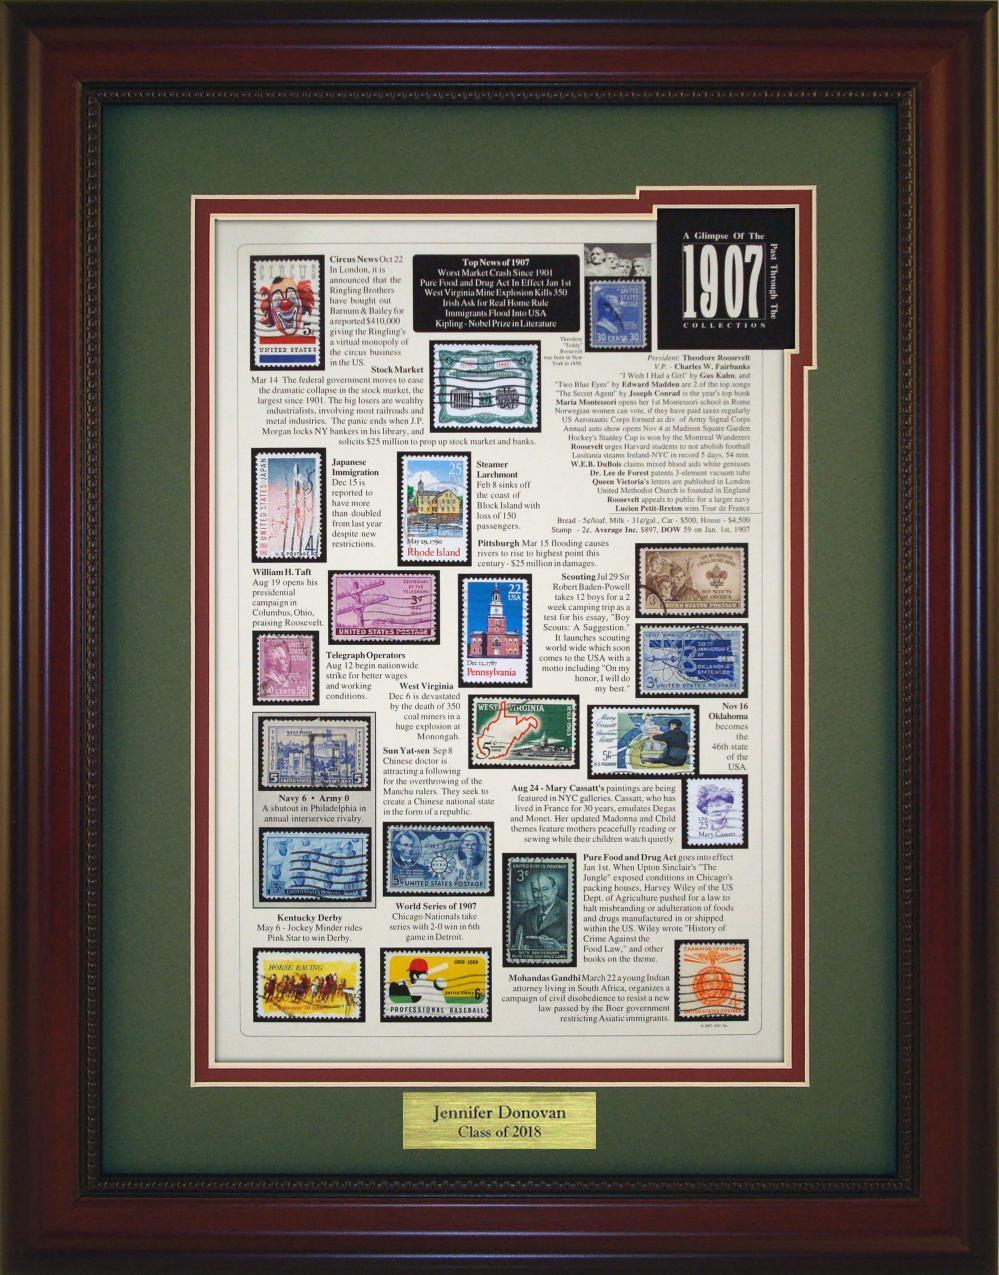 Year 1907 - Personalized Unique Framed Gift